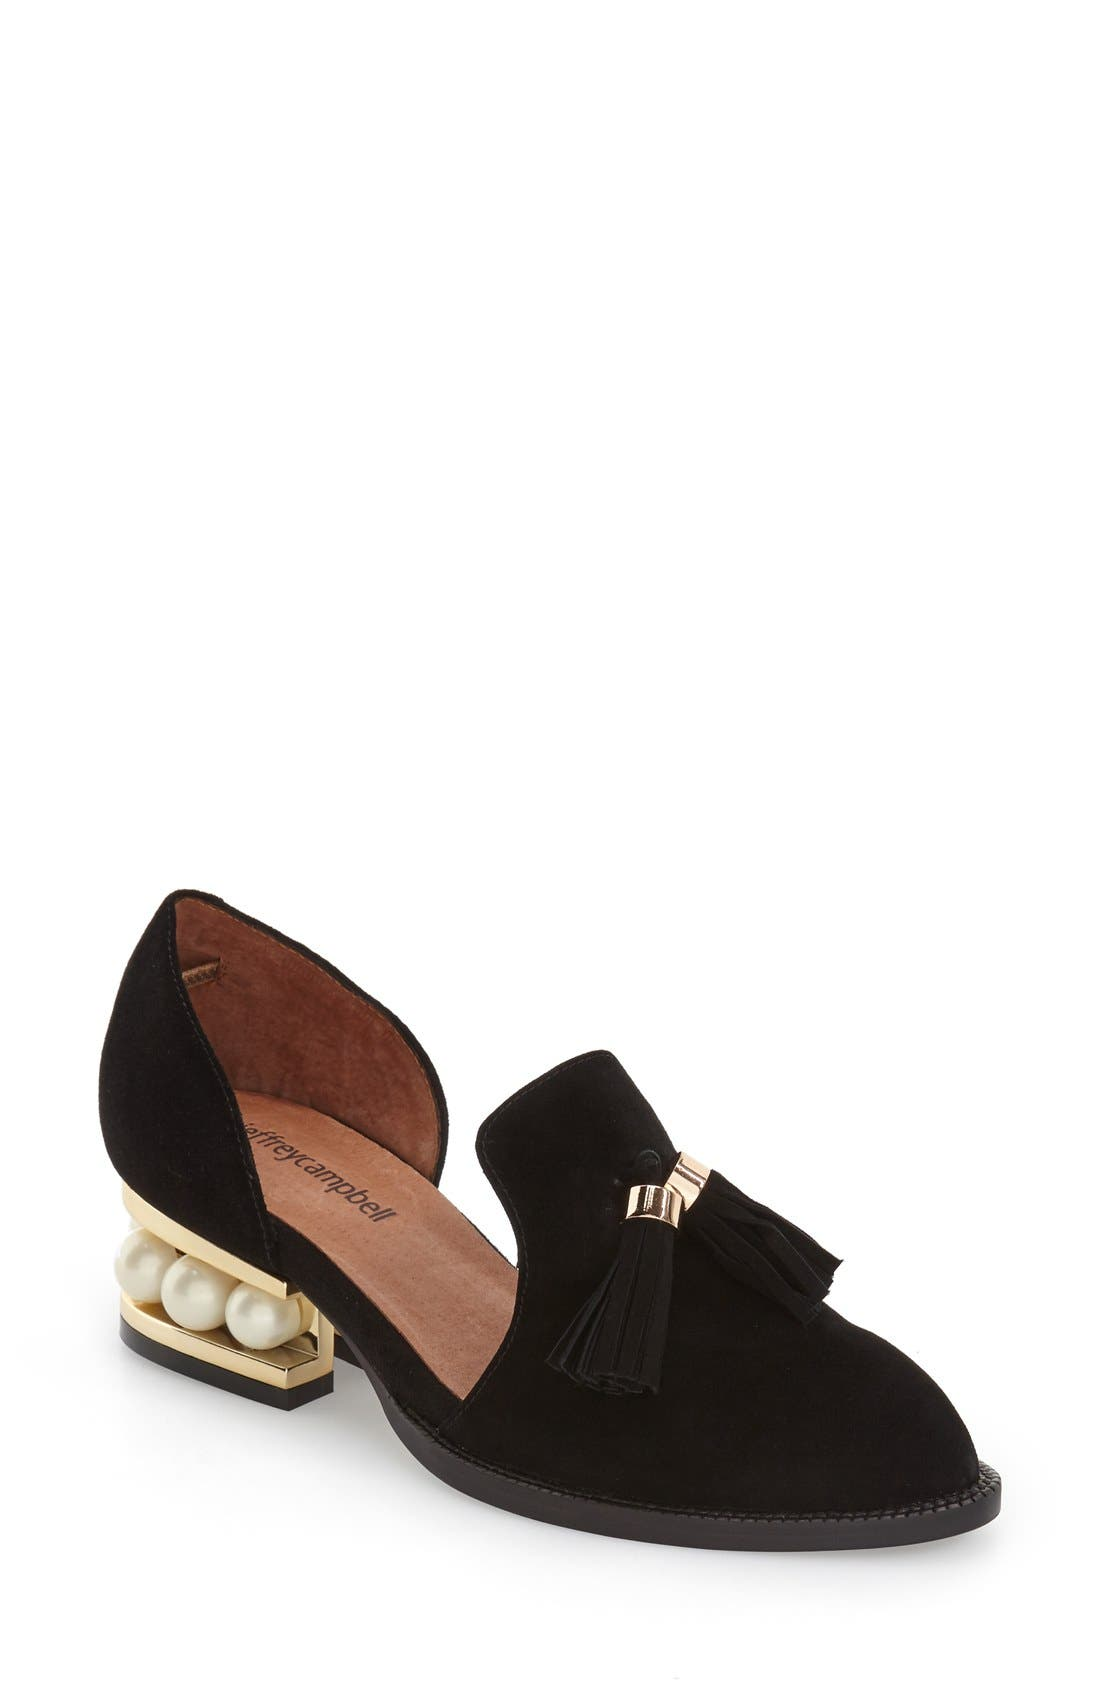 Main Image - Jeffrey Campbell 'Civil' Pearly Heeled Beaded Tassel Loafer (Women)